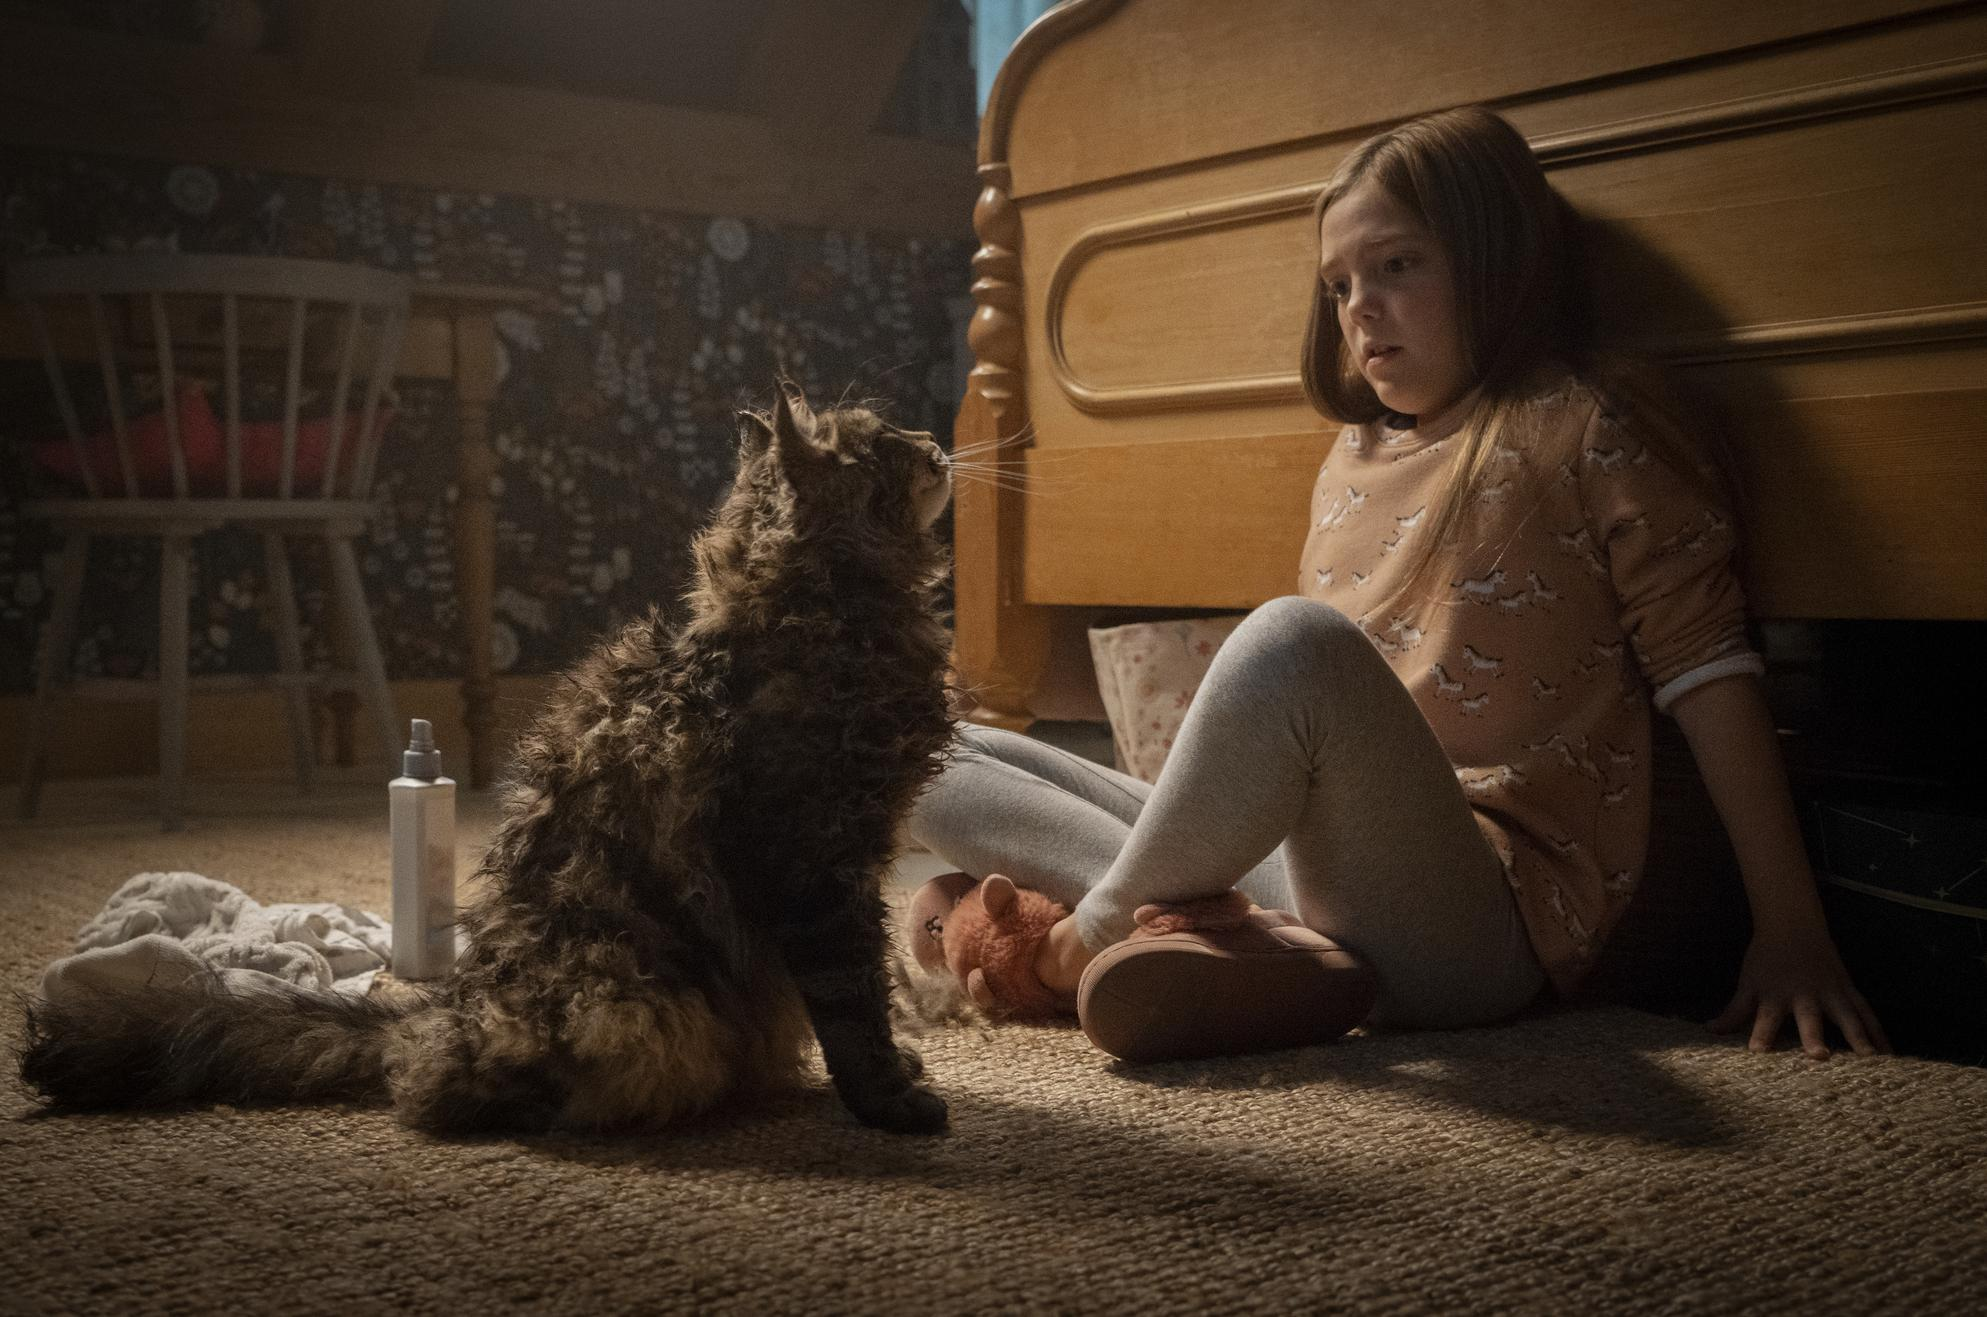 Movie review 30 years after \u0027Pet Sematary,\u0027 remake shows